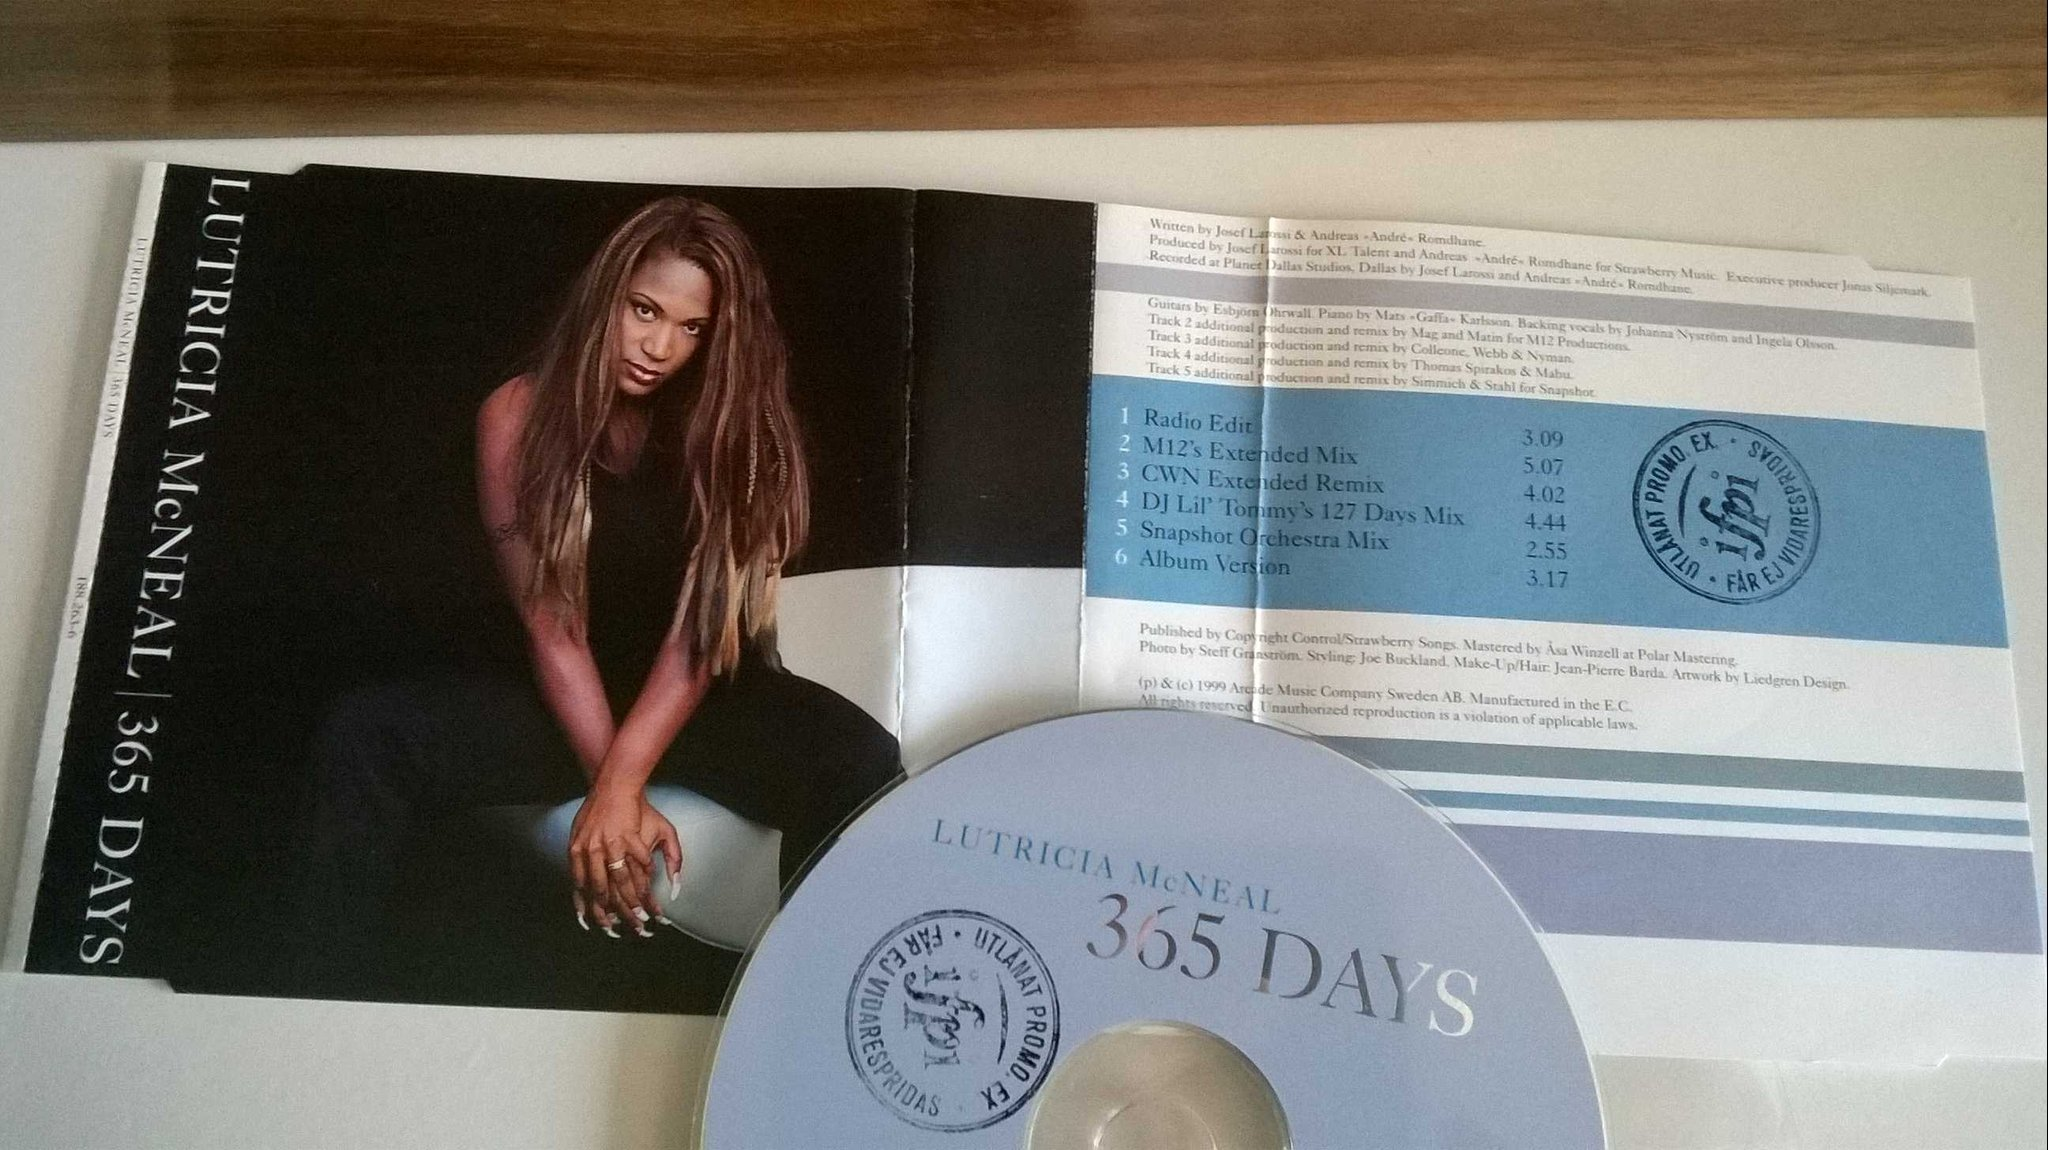 Lutricia McNeal - 365 days, single CD, promo stämplad